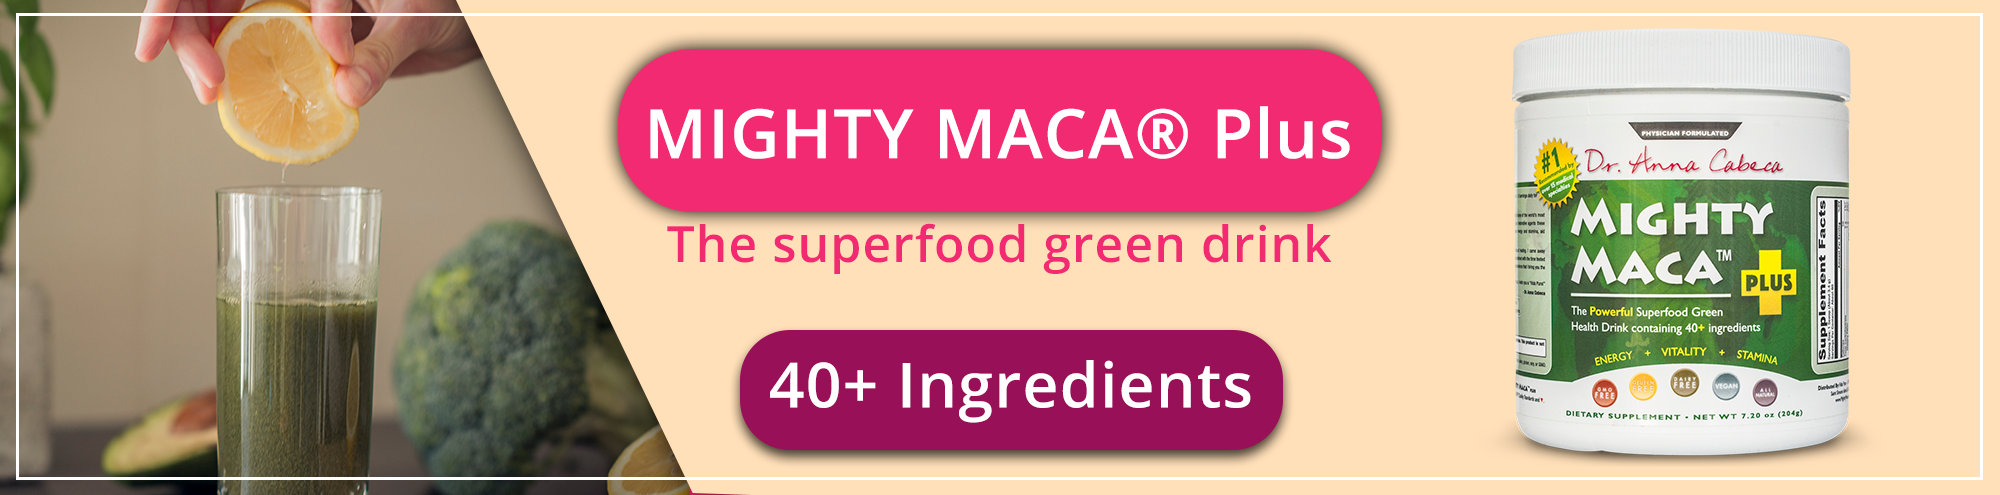 mighty maca